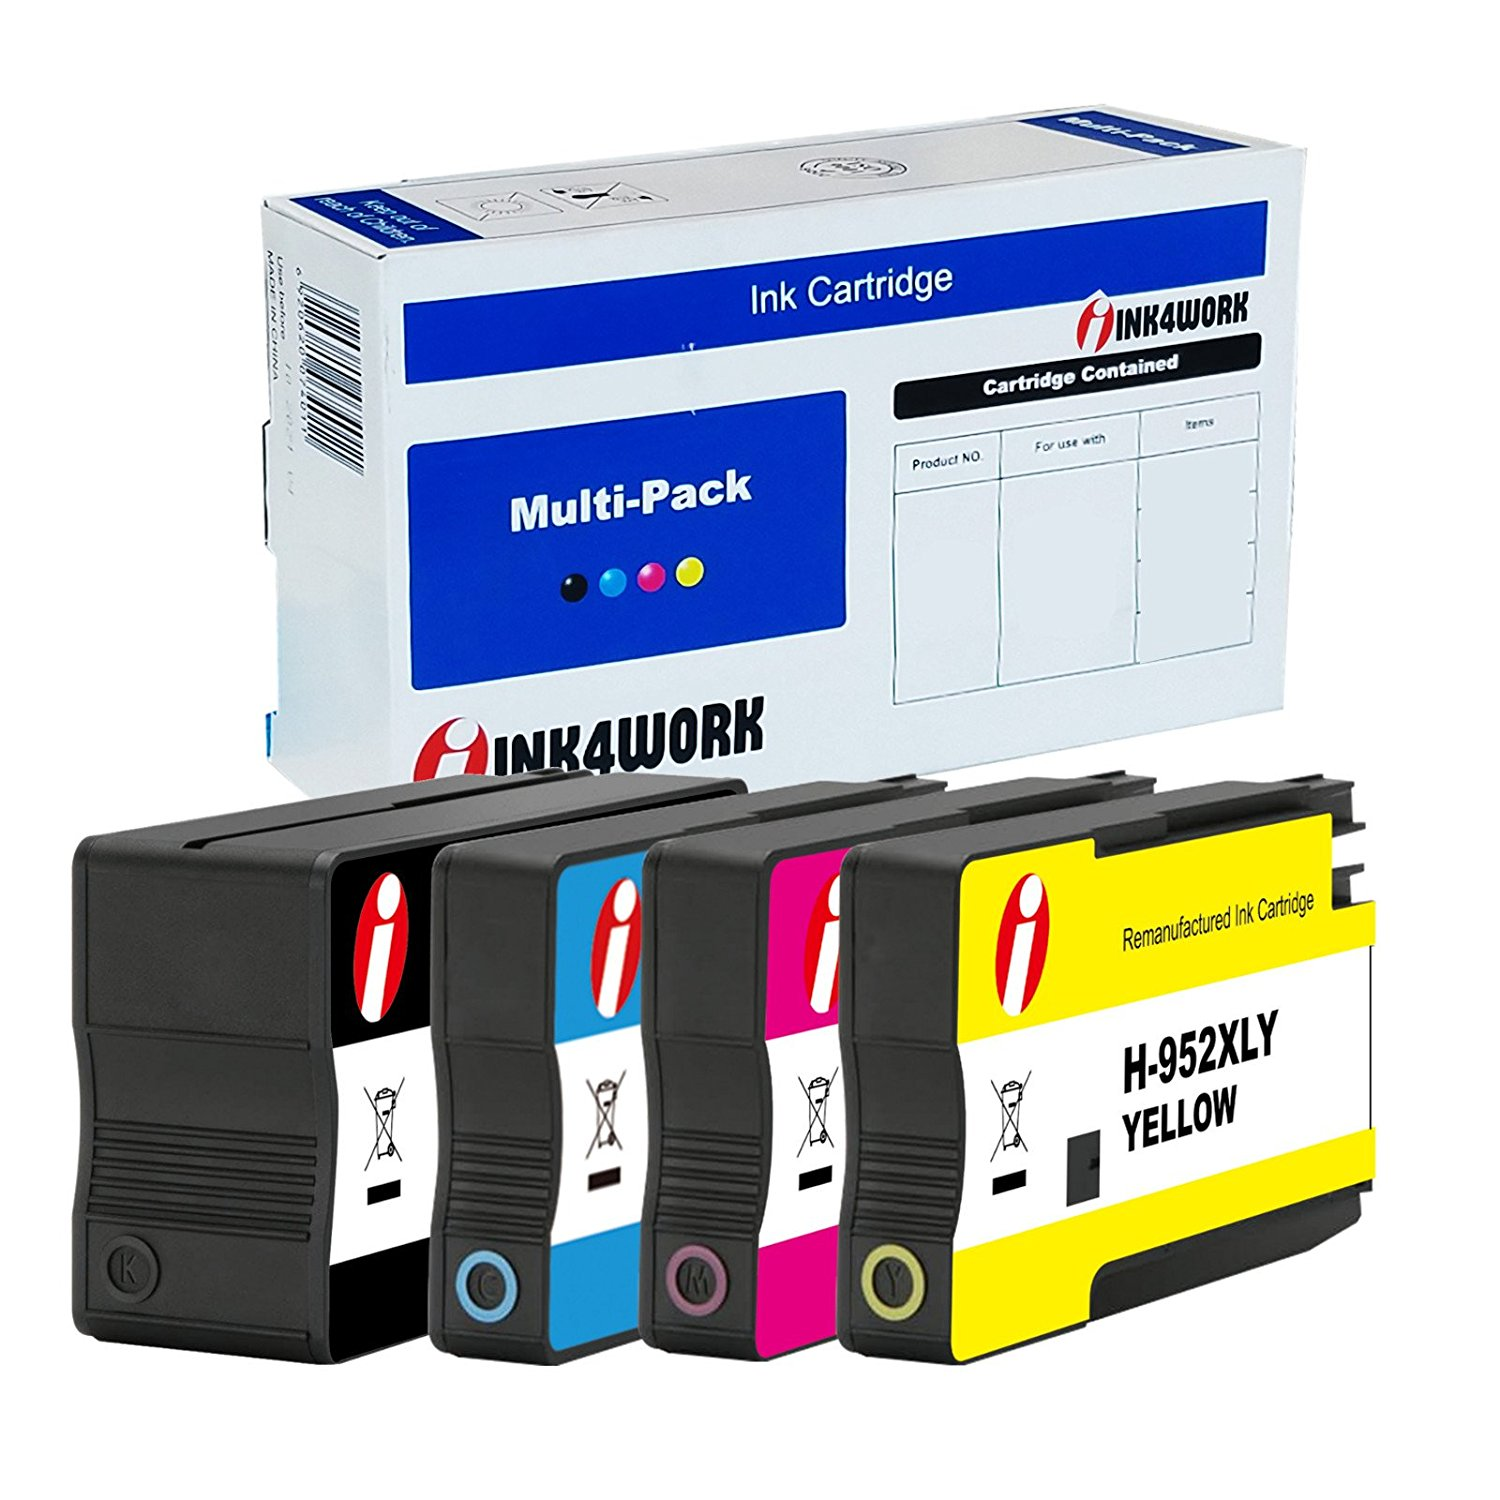 ESTON Remanufactured for 952XL 952 XL High Yield Ink Cartridges 2 Set Black Cyan Magenta Yellow for OfficeJet Pro 8710 8720 8740 7740 8210 8216 8700 8730 8715 8725 8702 Printers